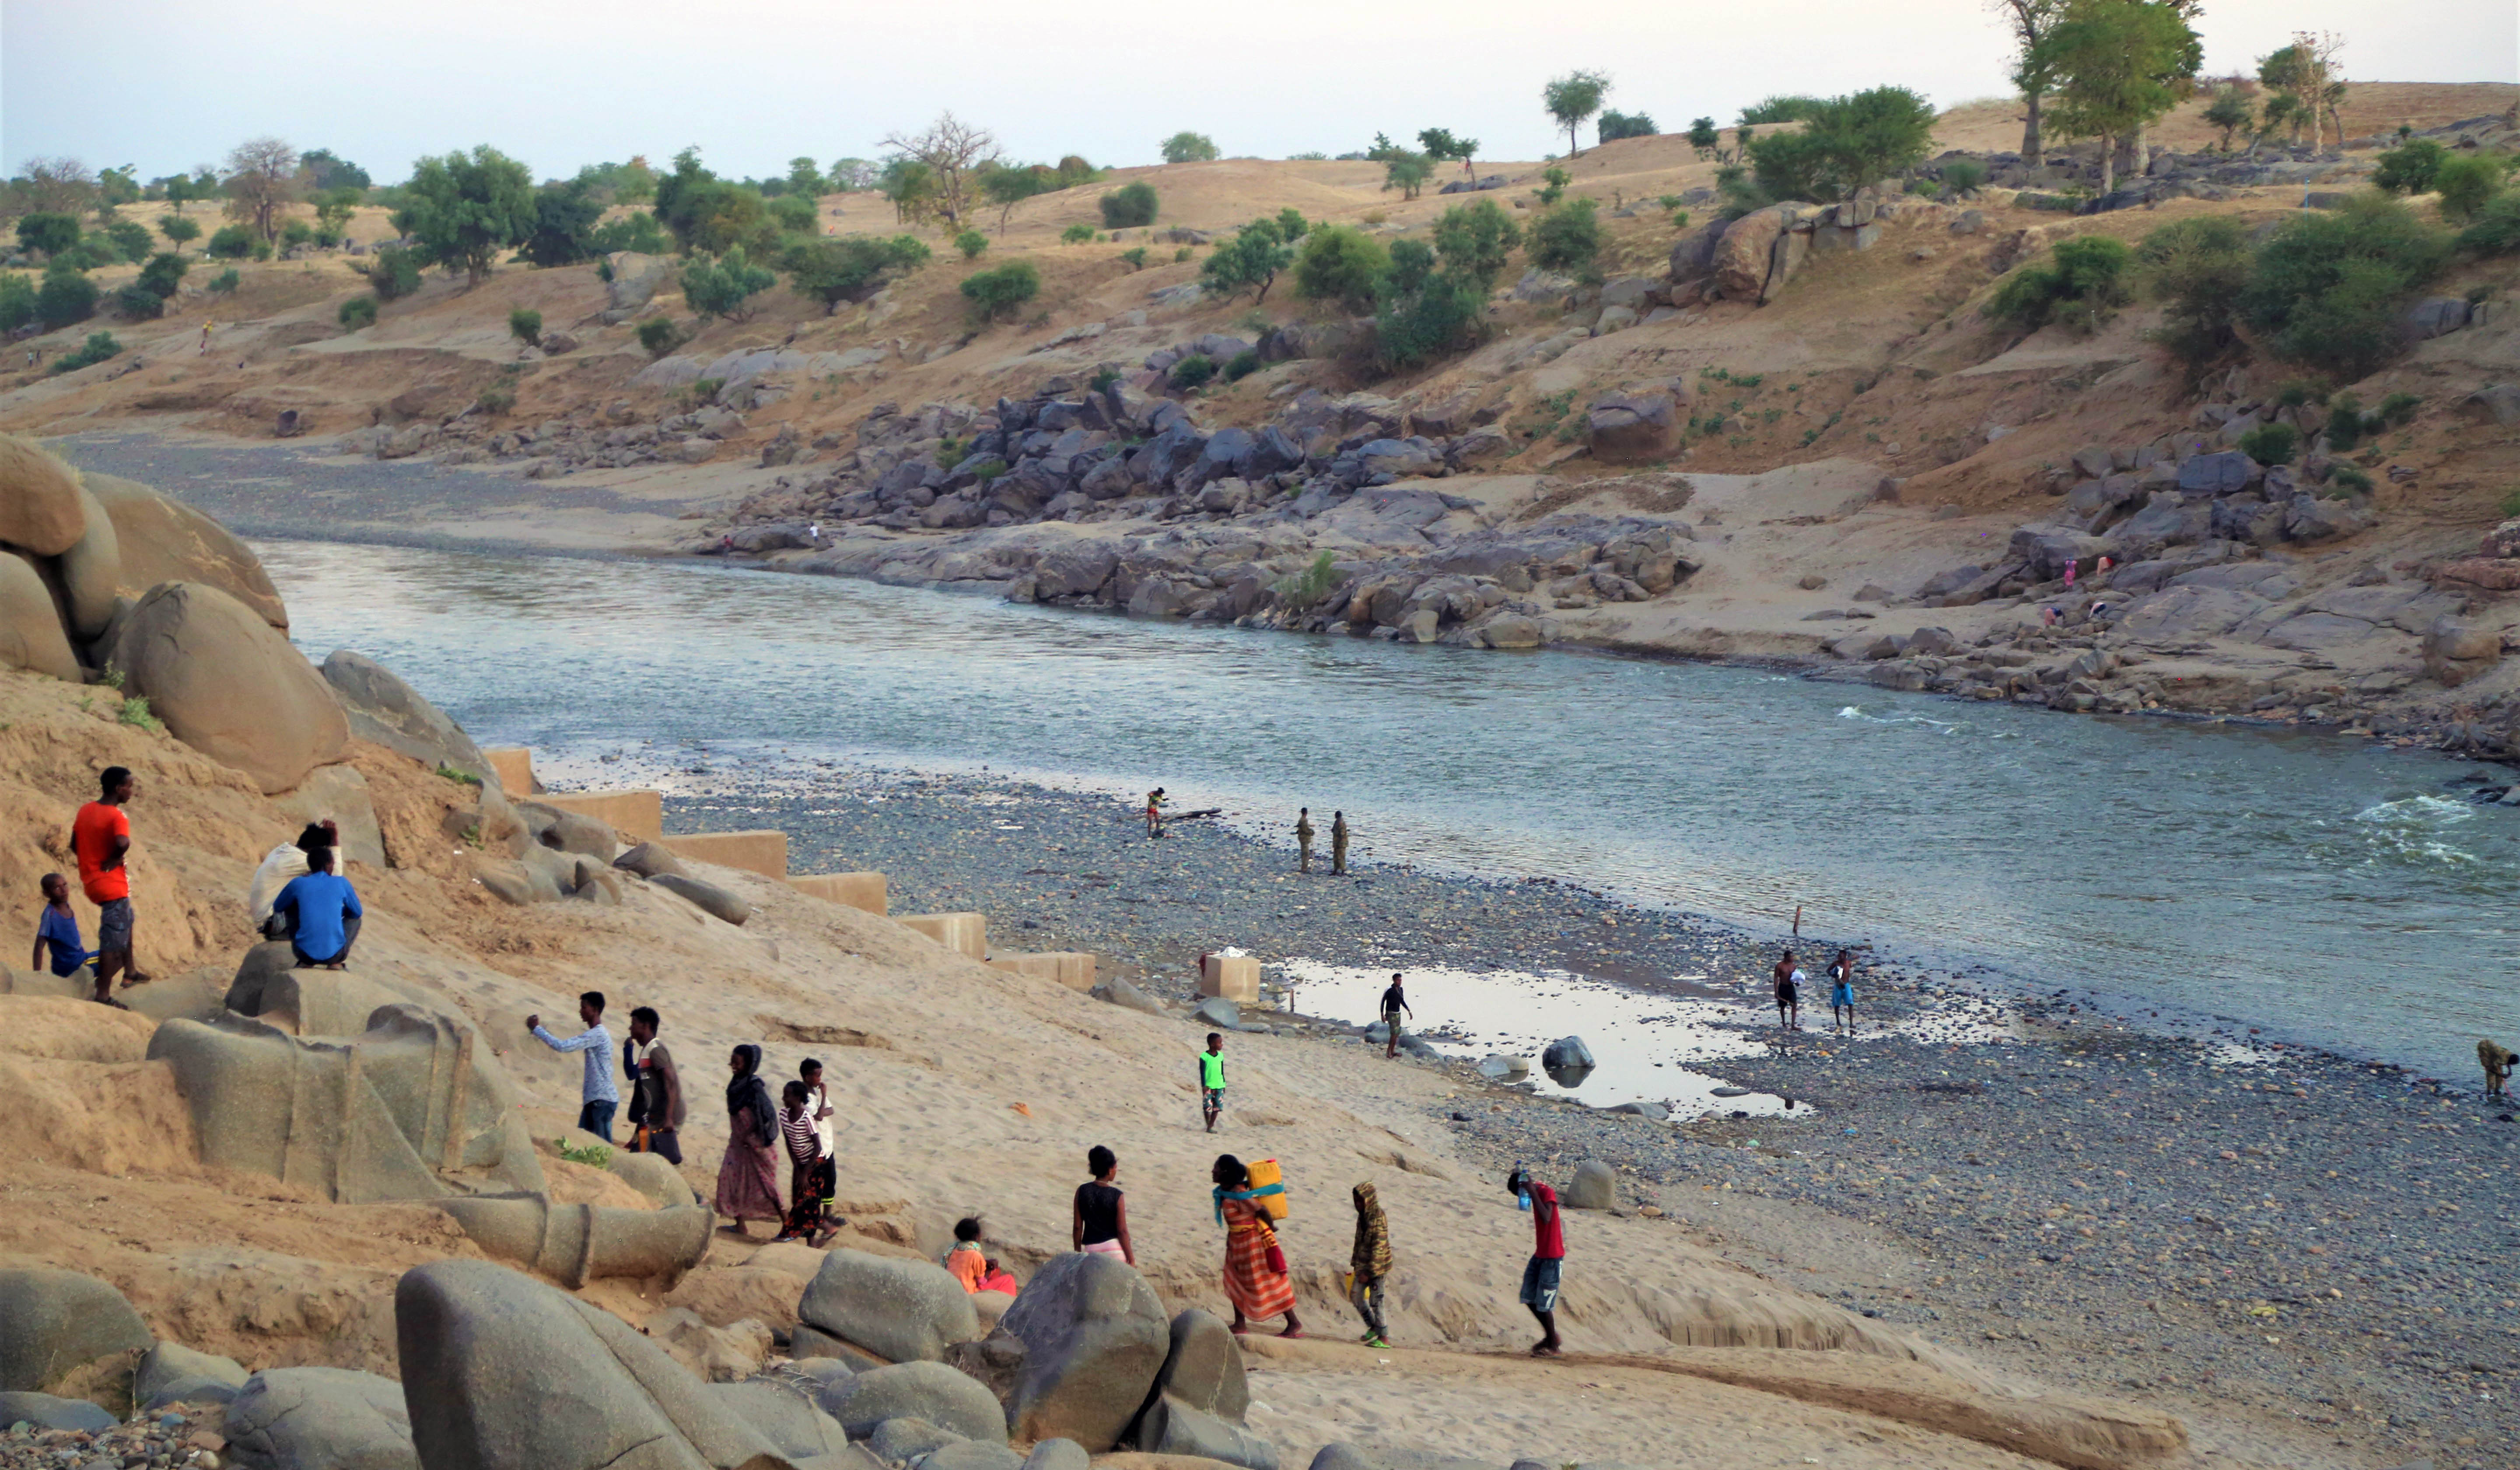 The photo shows refugees walking across an area of water and up a large hill.